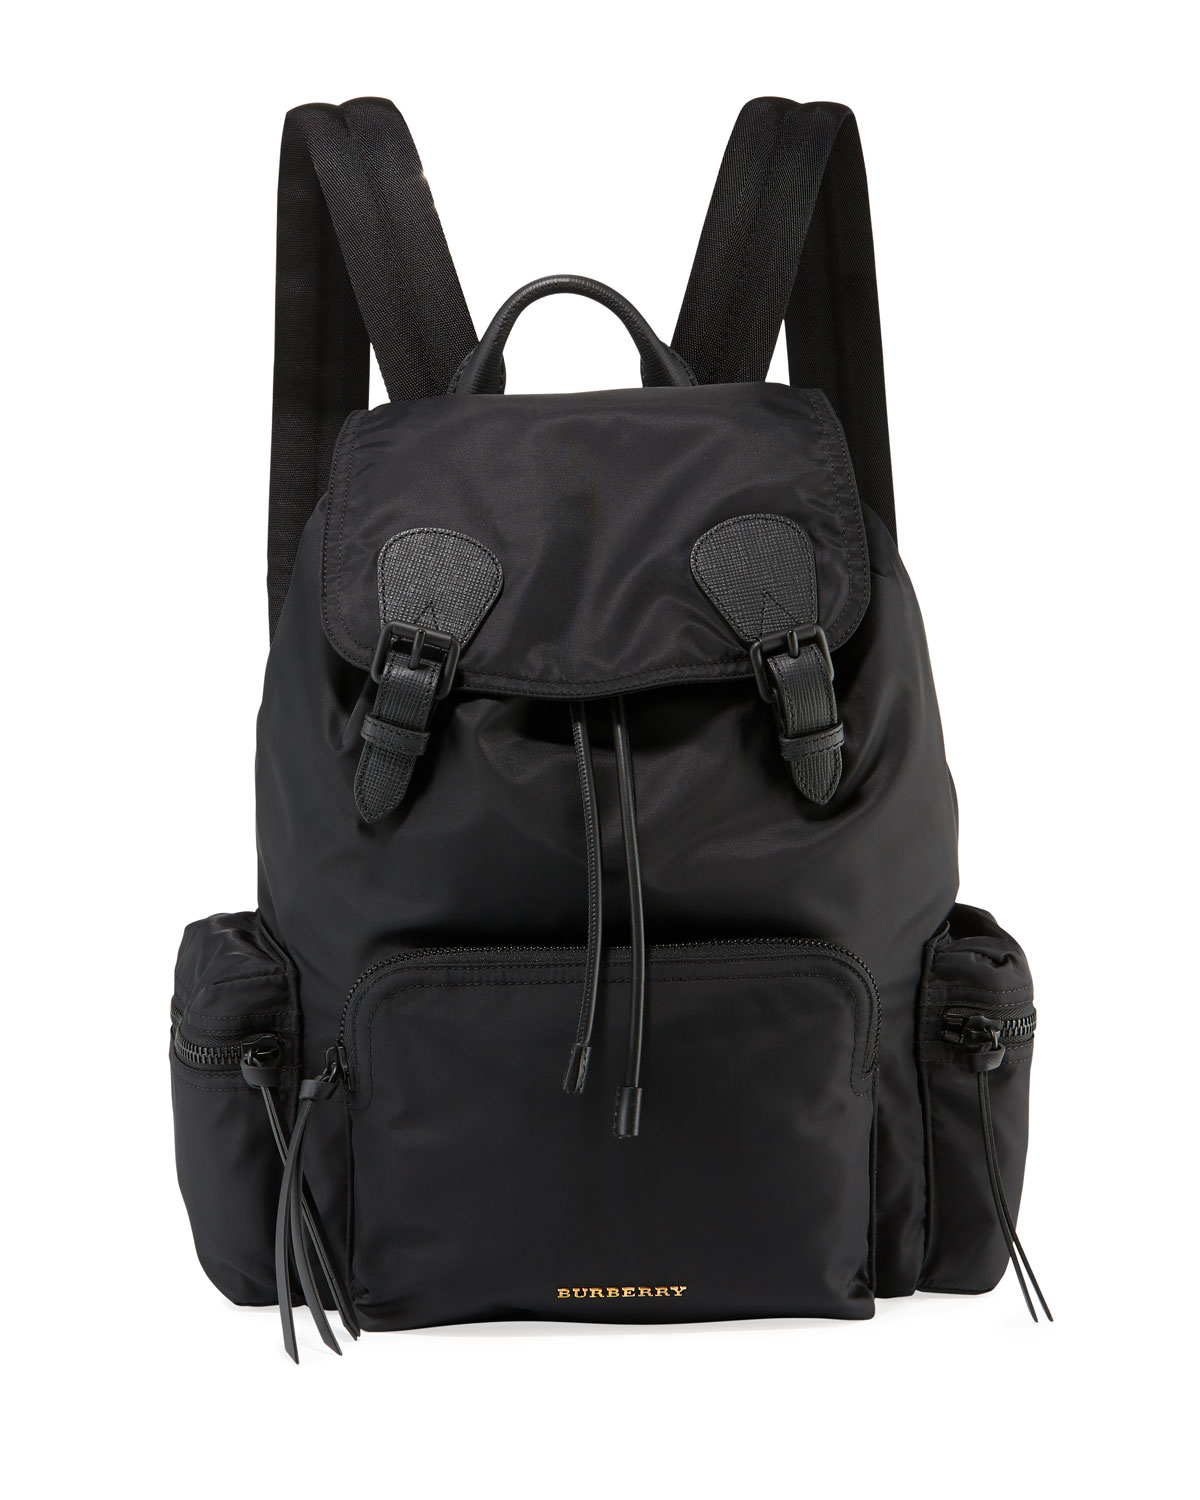 ce2a47c42168 Burberry Men s Rucksack Leather-Trim Nylon Backpack